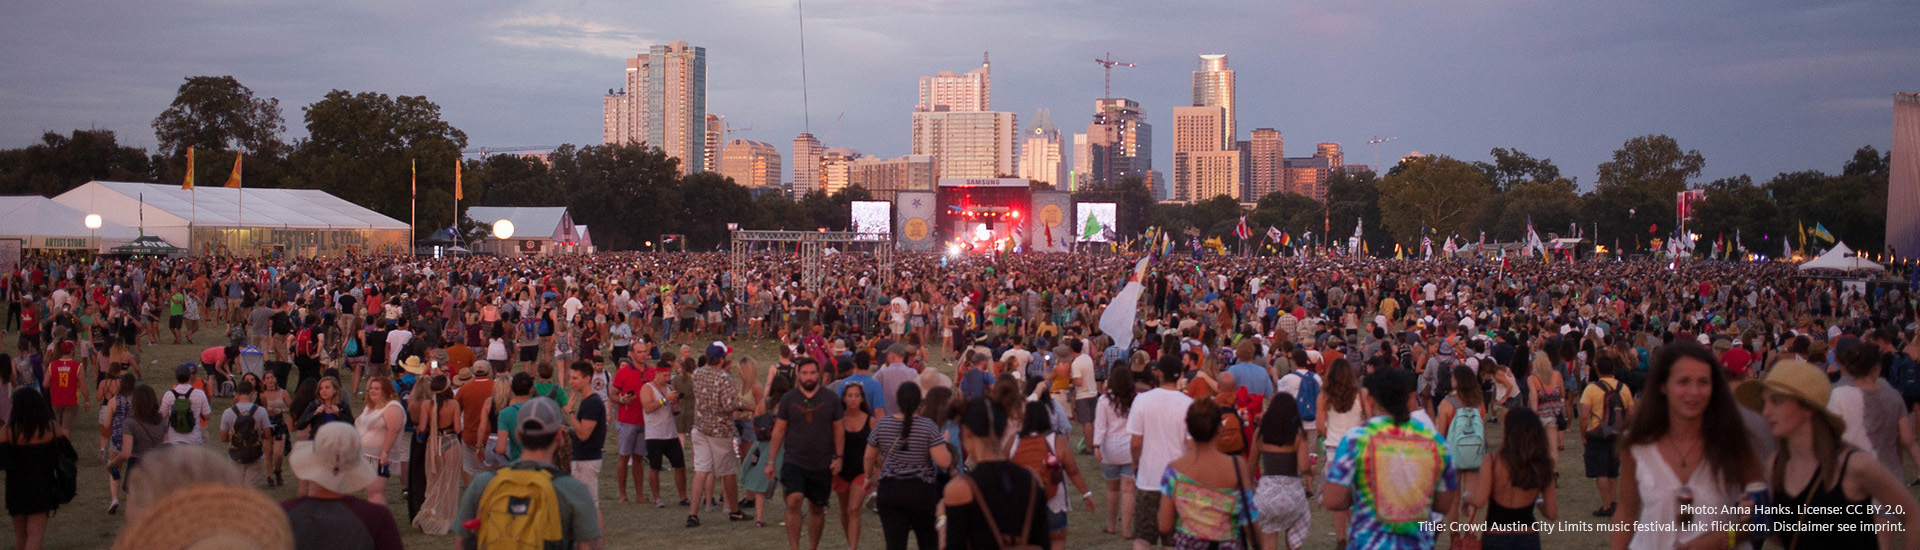 Photo: Anna Hanks. License: CC BY 2.0. Title: Crowd Austin City Limits music festival. Link: flickr.com. Disclaimer see imprint.